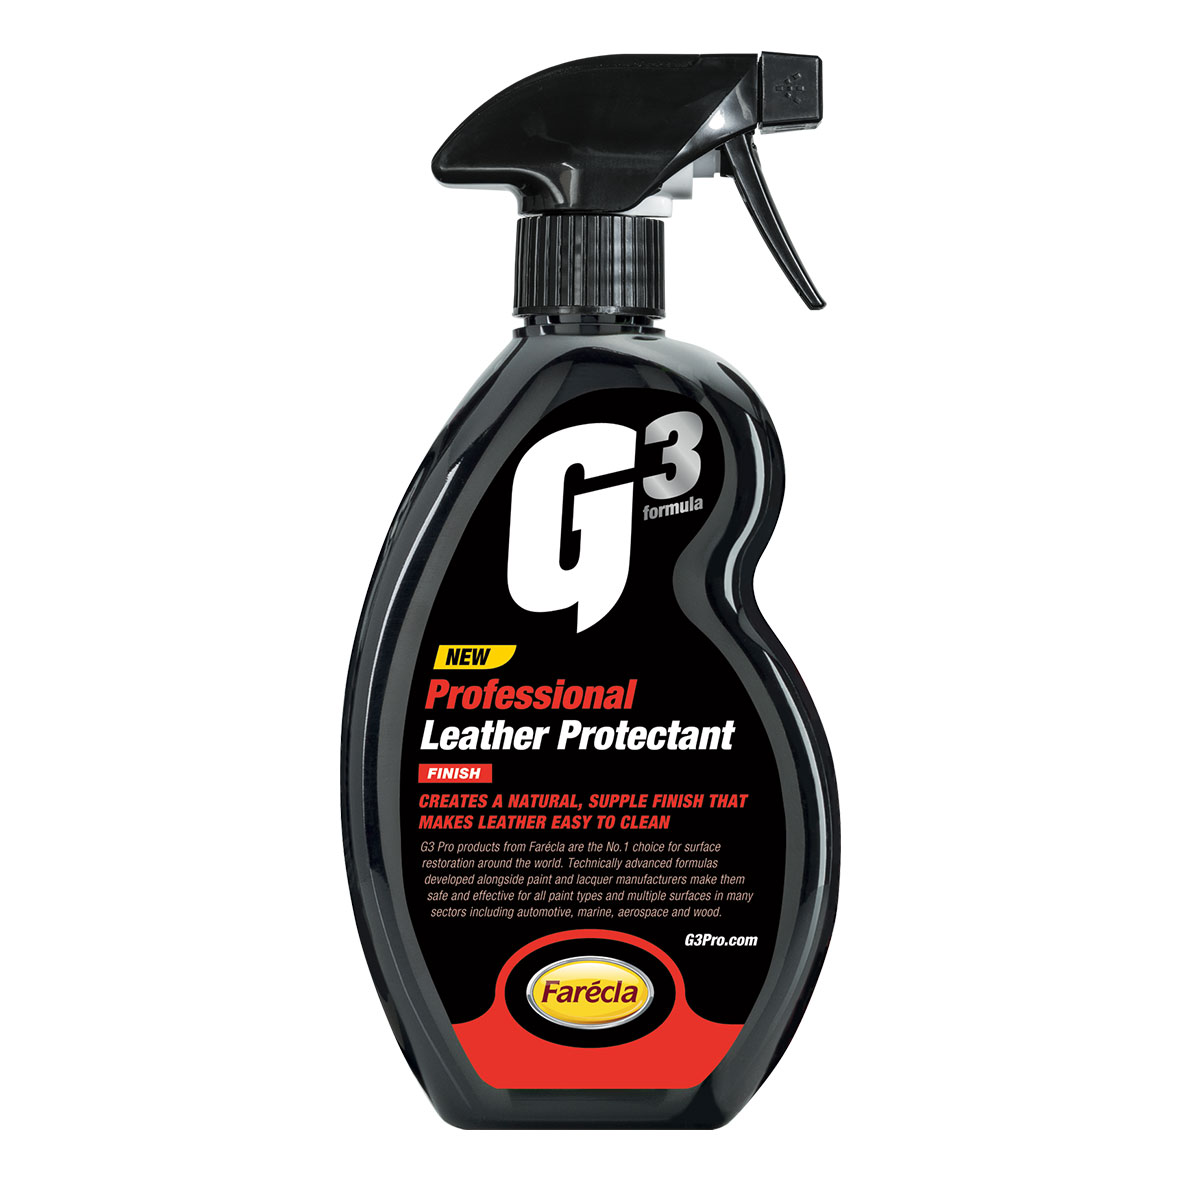 G3 Professional Leather Protectant